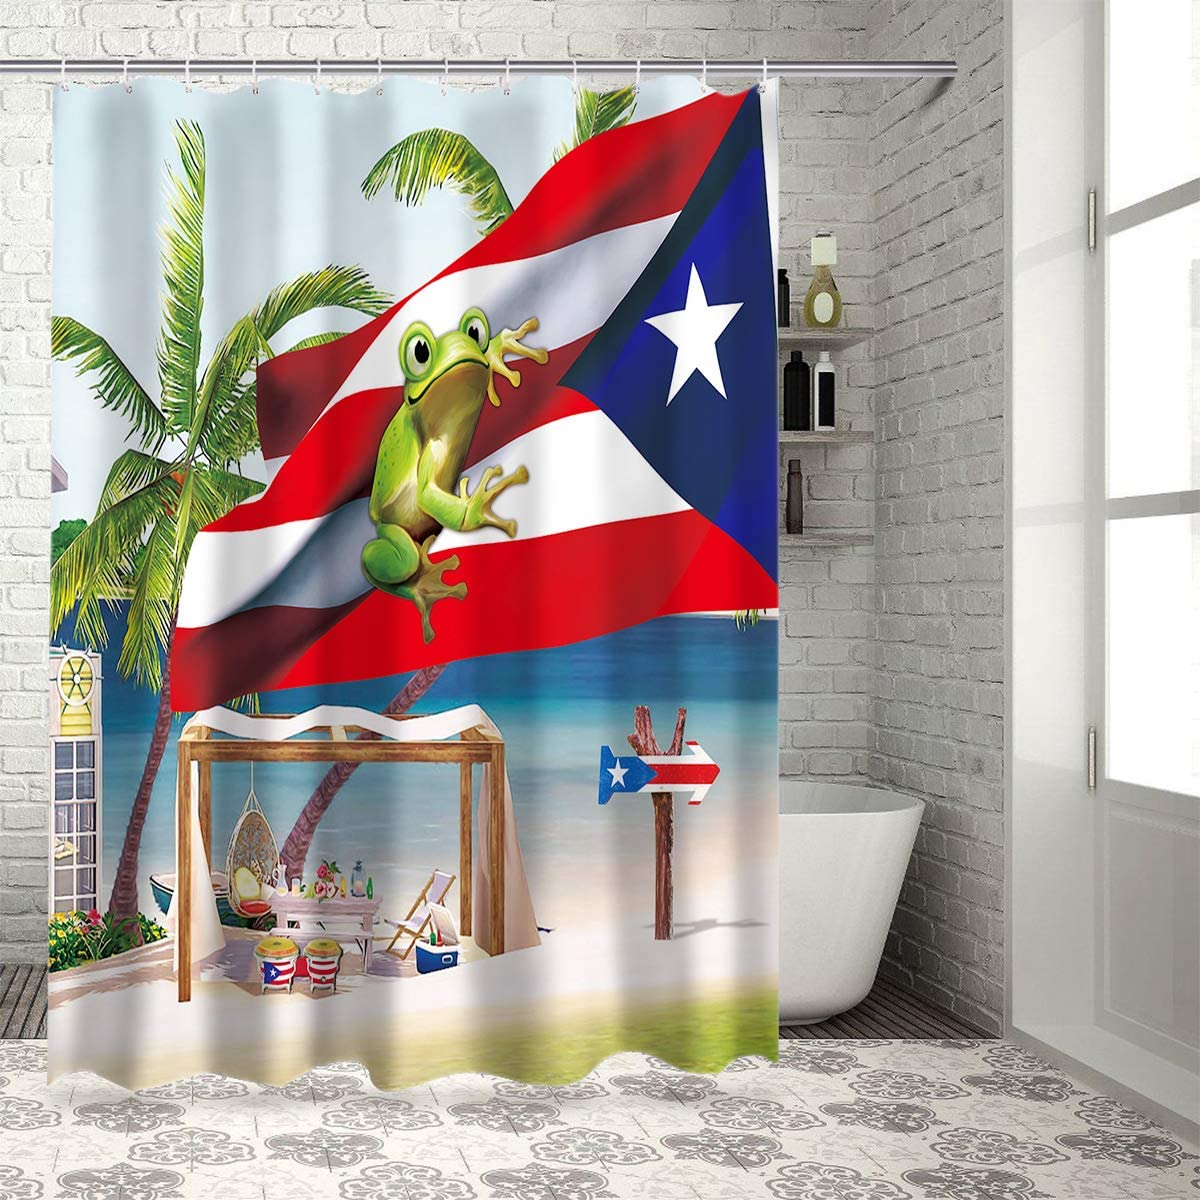 Z&L Home Coastal Beach Time Shower Curtains for Bathroom Decor Puerto Rico Flag and Frog Polyester Fabric Waterproof Bath Curtain Set with Hooks 36×72Inch